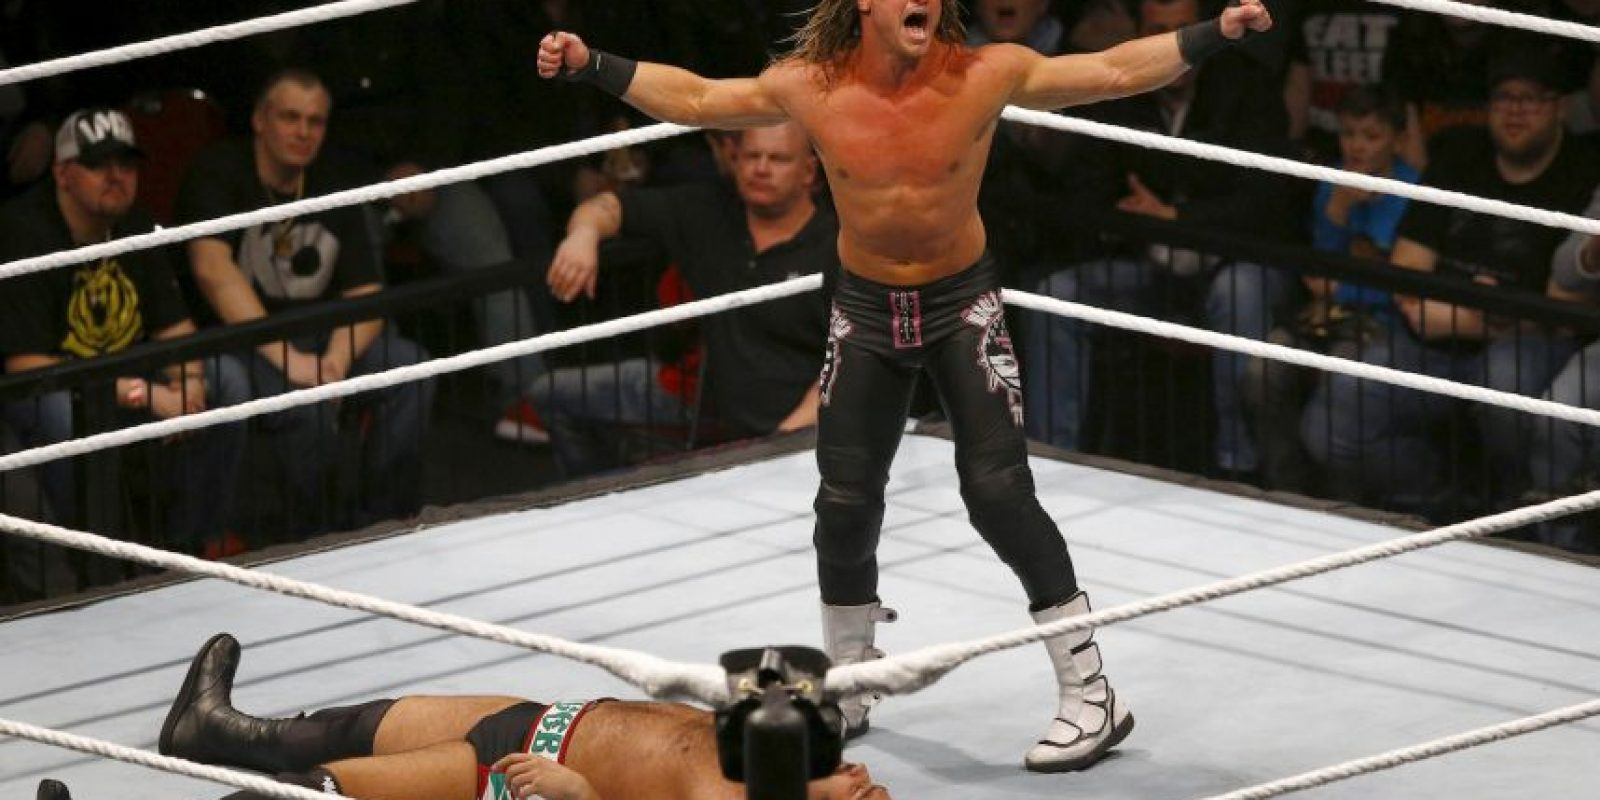 Dolph Ziggler enfrenta un complicado problema familiar Foto: Getty Images